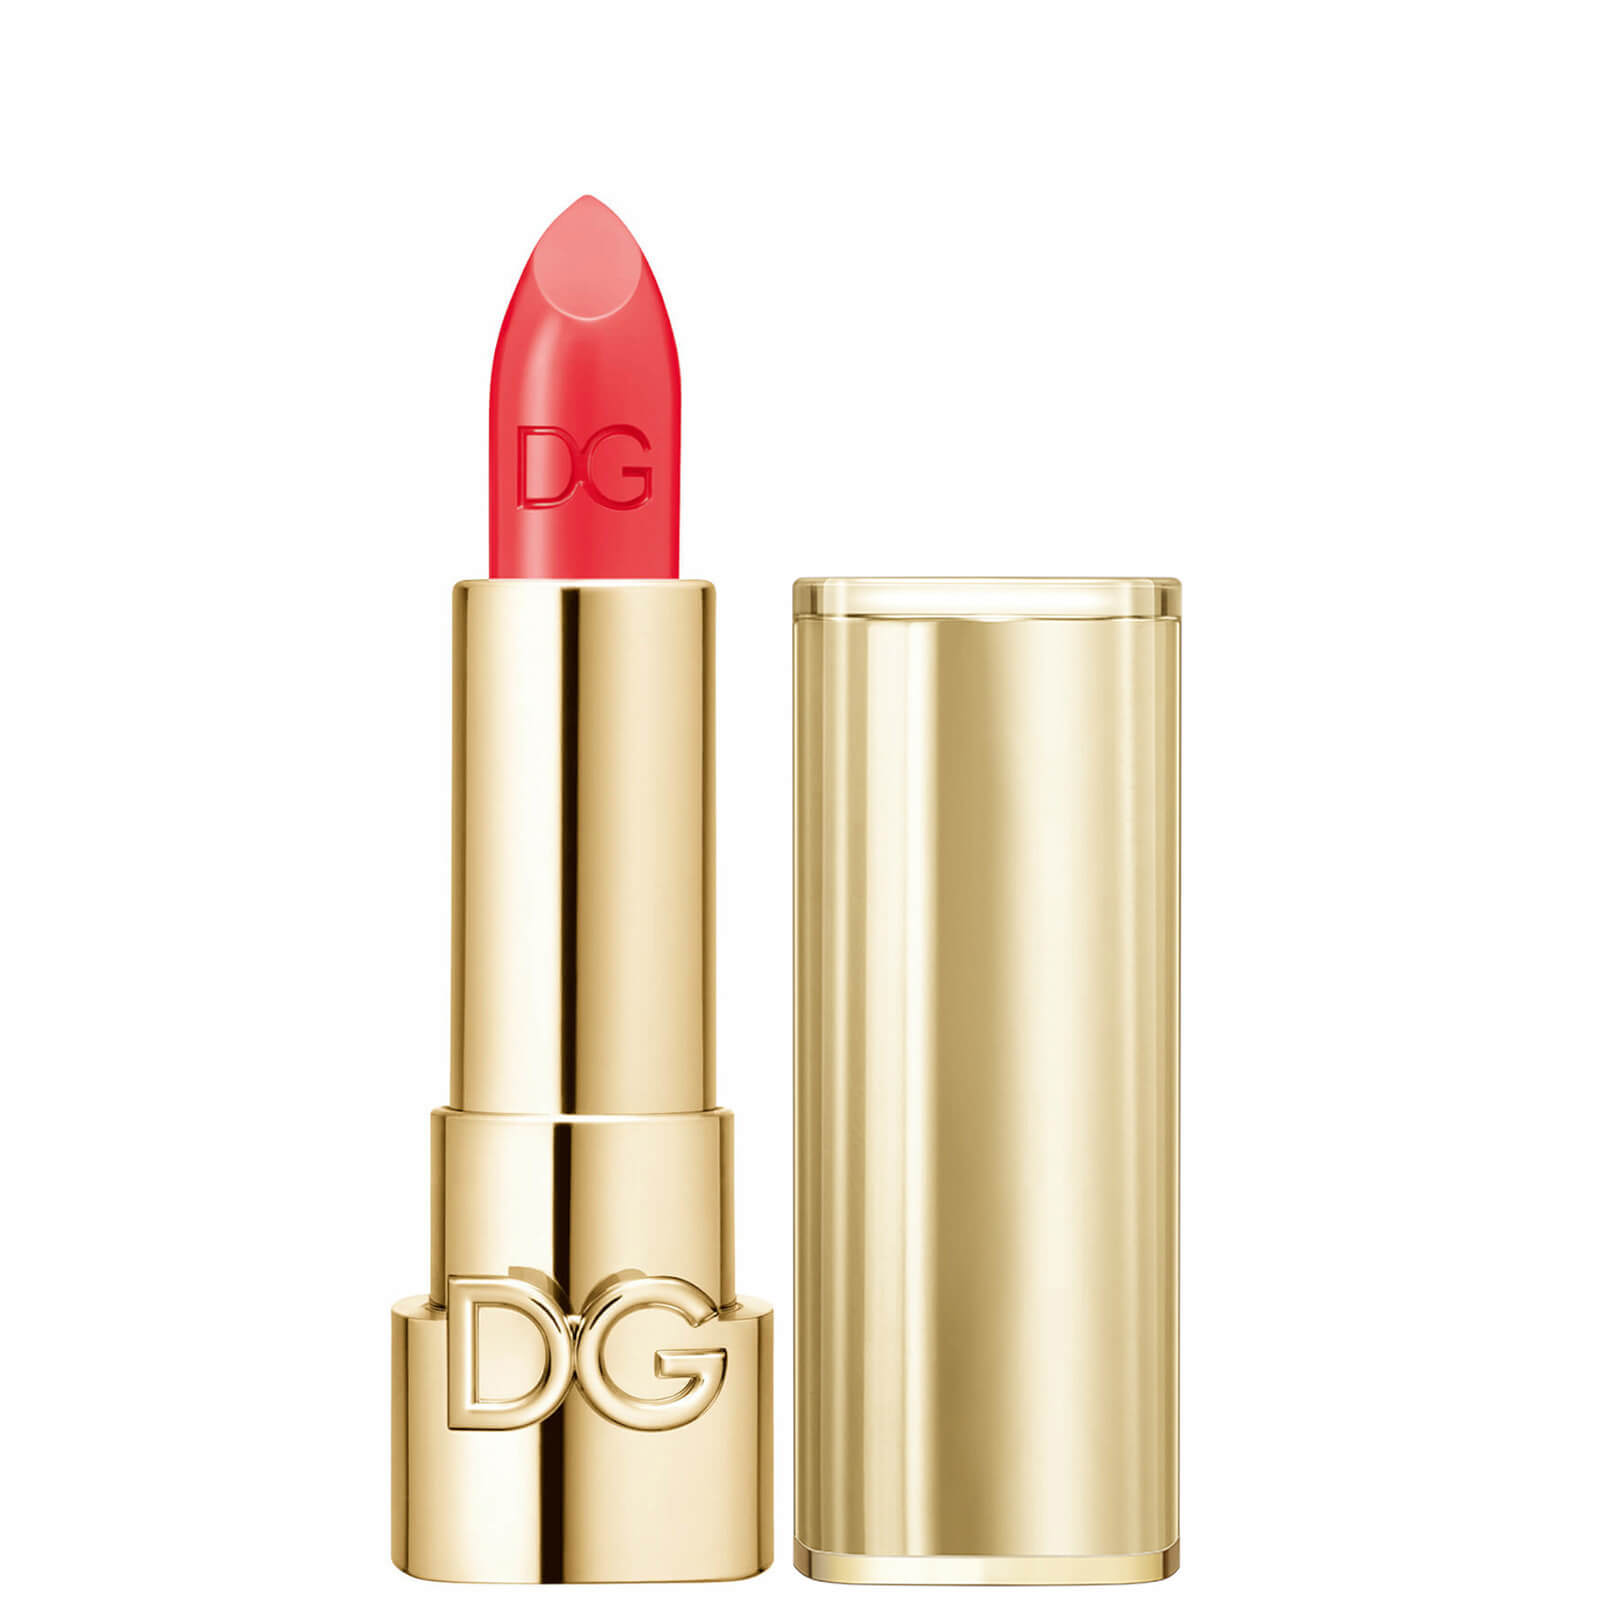 Dolce&Gabbana The Only One Lipstick + Cap (Gold) (Various Shades) - 420 Coral Sunset